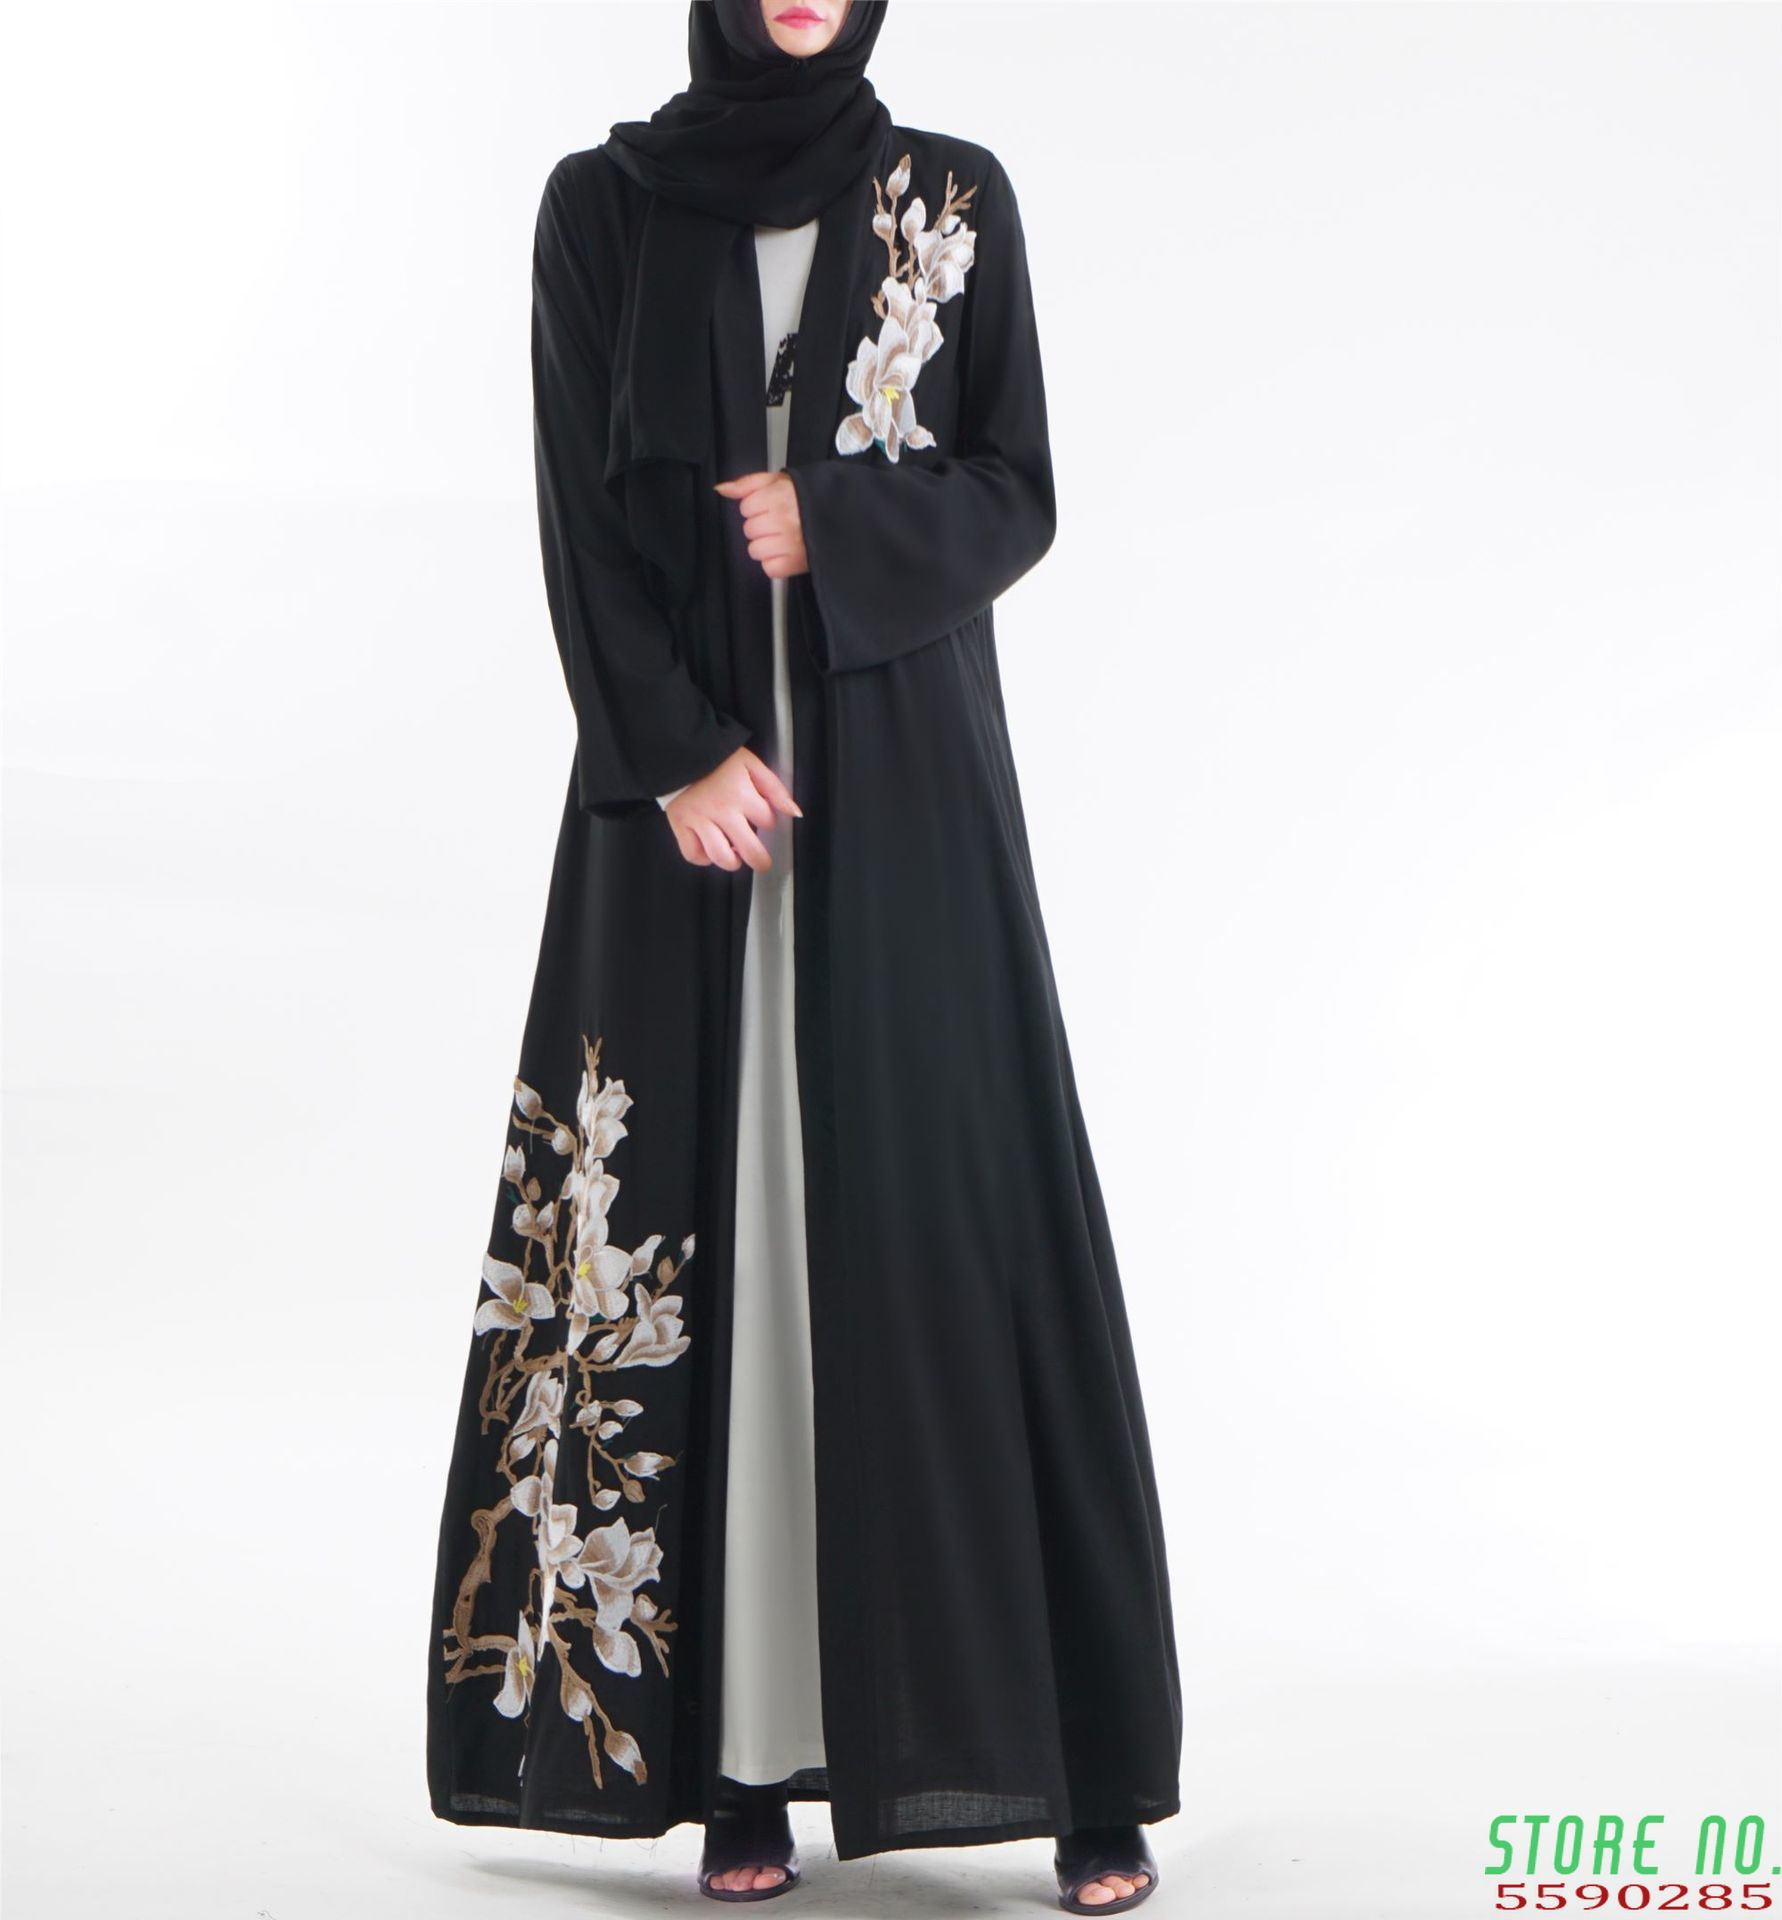 Moroccan Kaftan Middle Eastern Dress Muslim Arabic Islamic Dubai Kaftan Turkey Indonesia Abaya Big Size Fashion Vestidos image